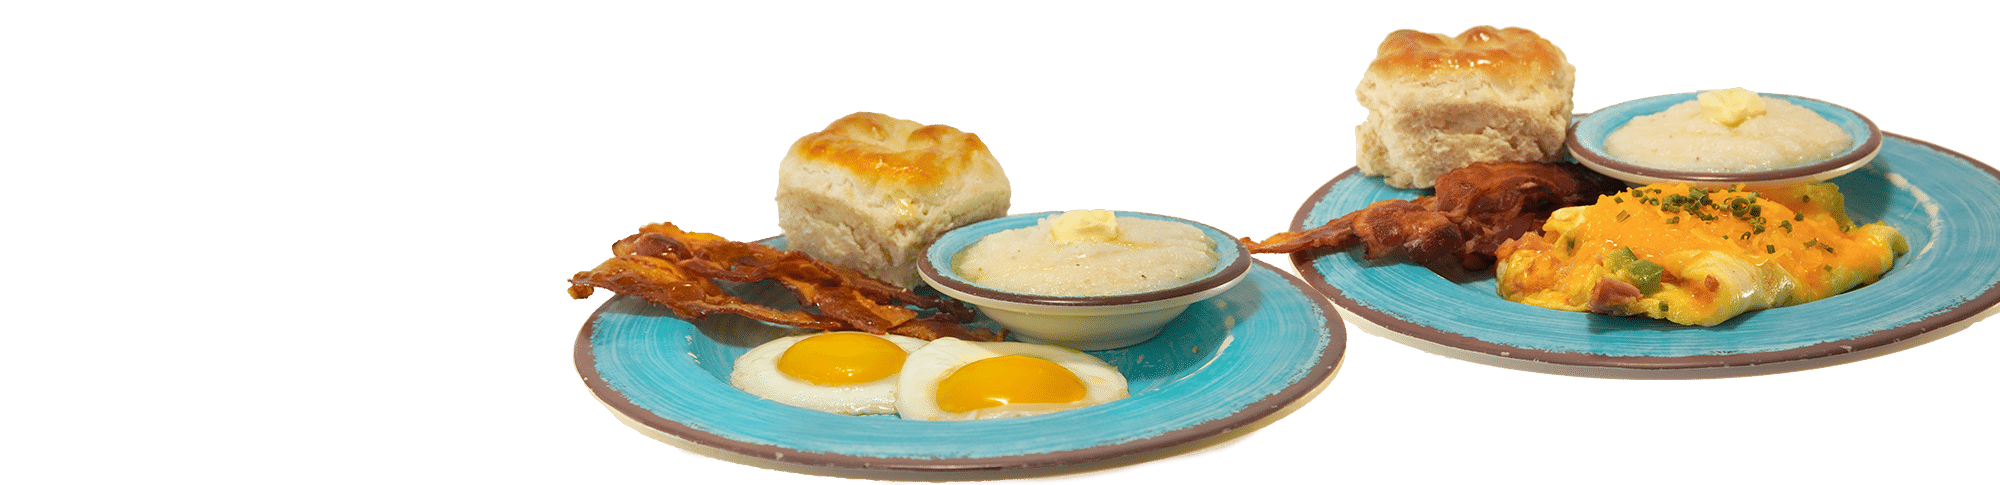 Eggs and More Breakfast at McDavids Cafe